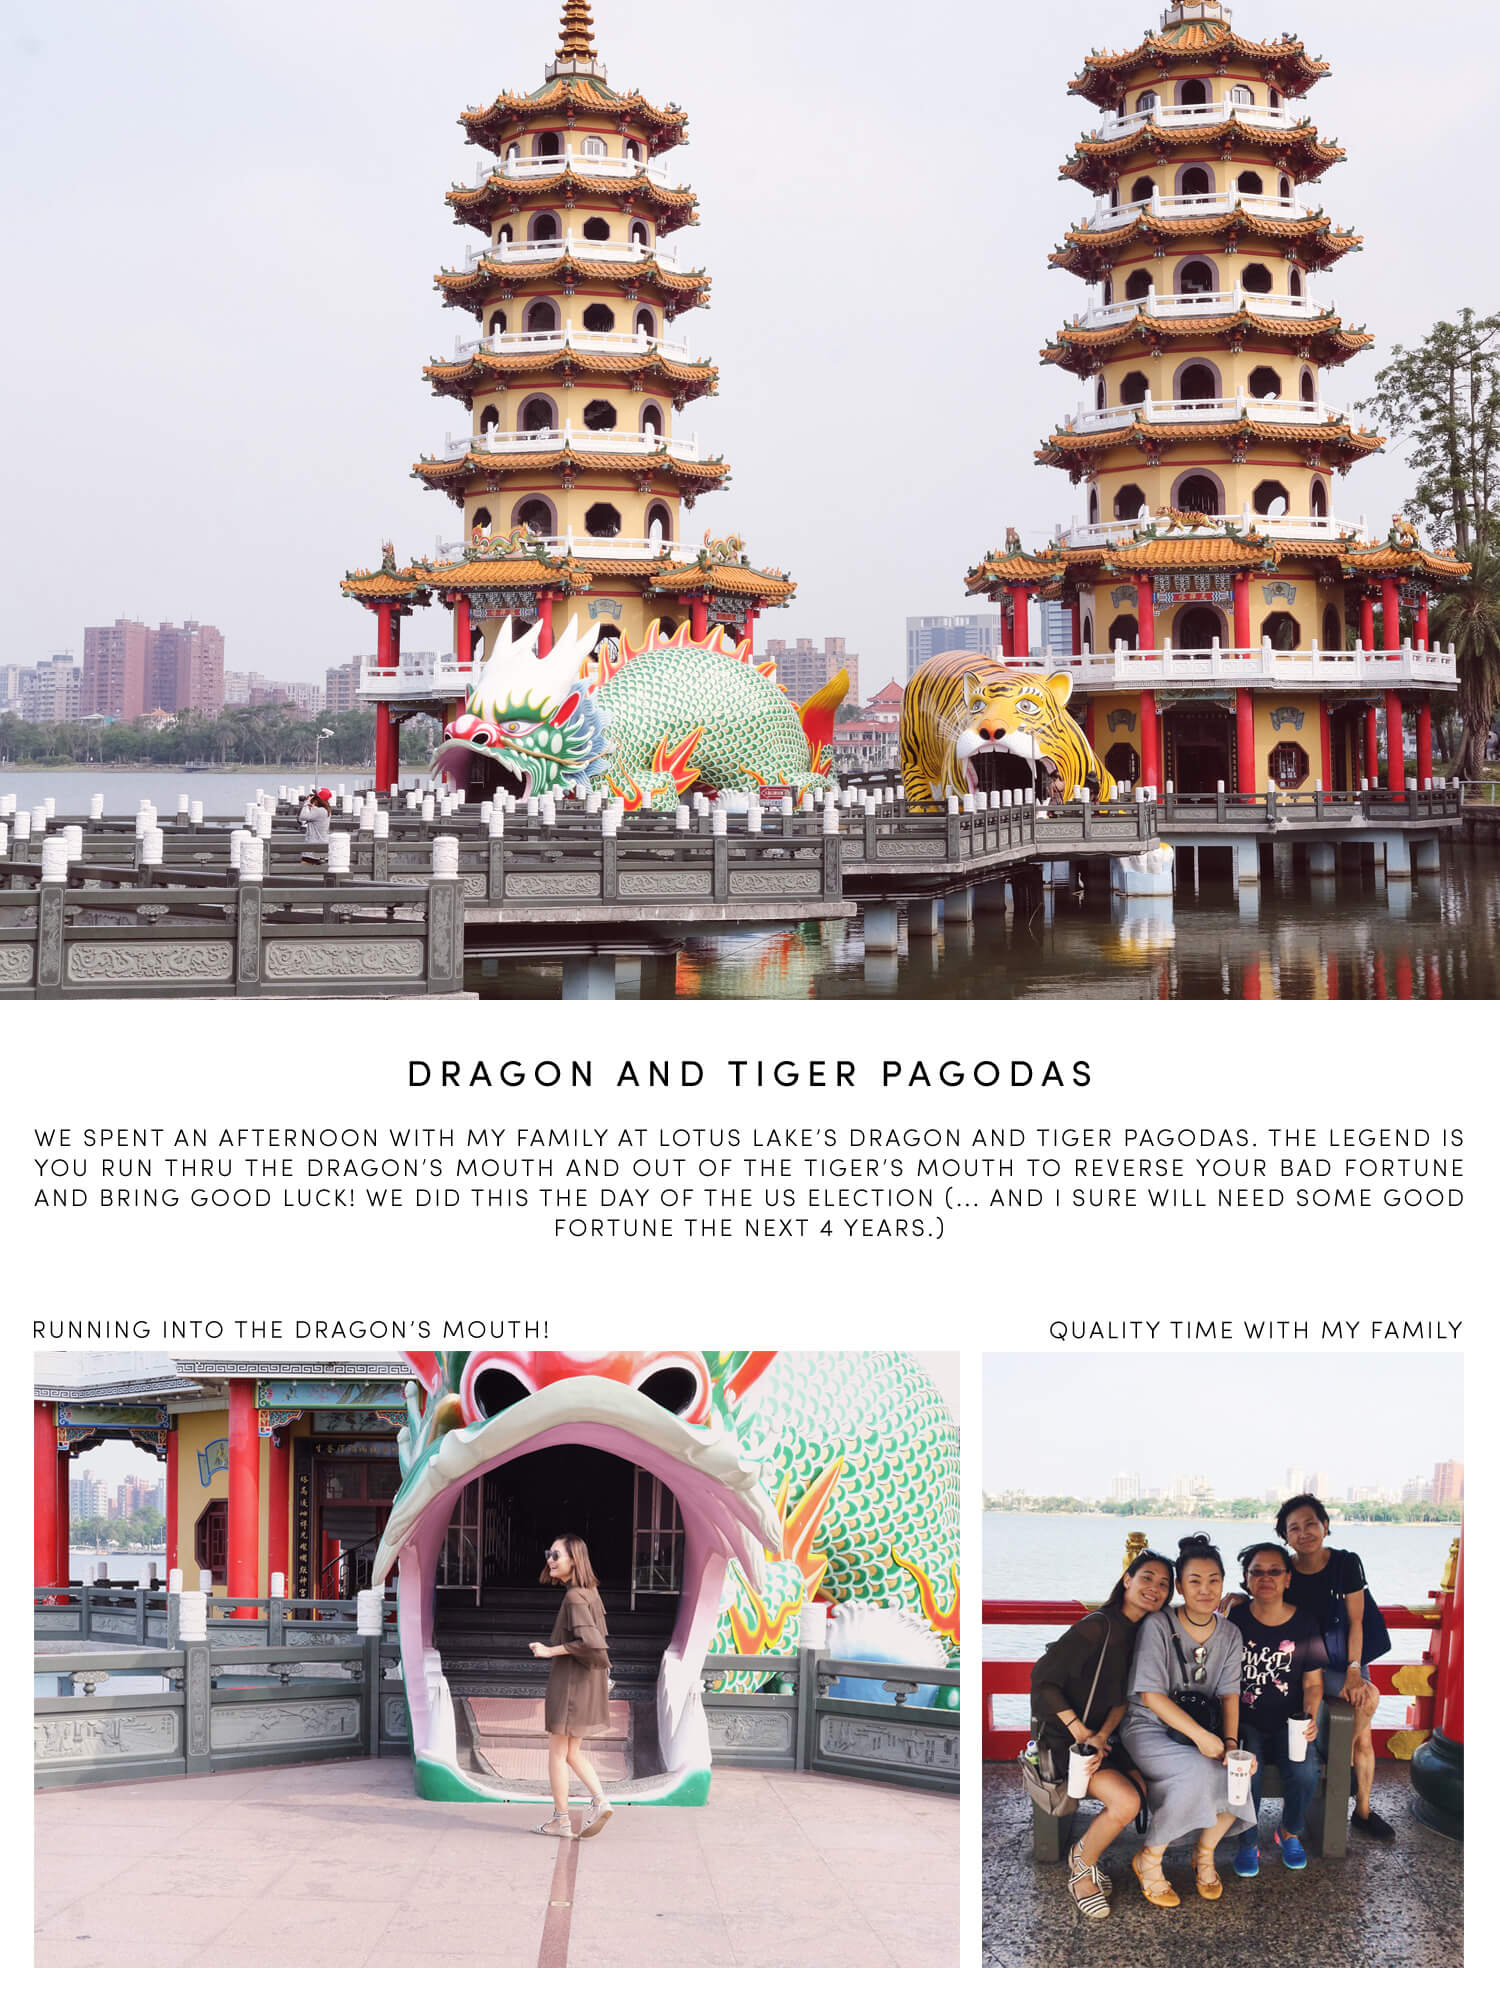 Guide to Kaohsiung Taiwan - Things To Do in Kaohsiung - Dragon and Tiger Pagodas - Lotus Lake